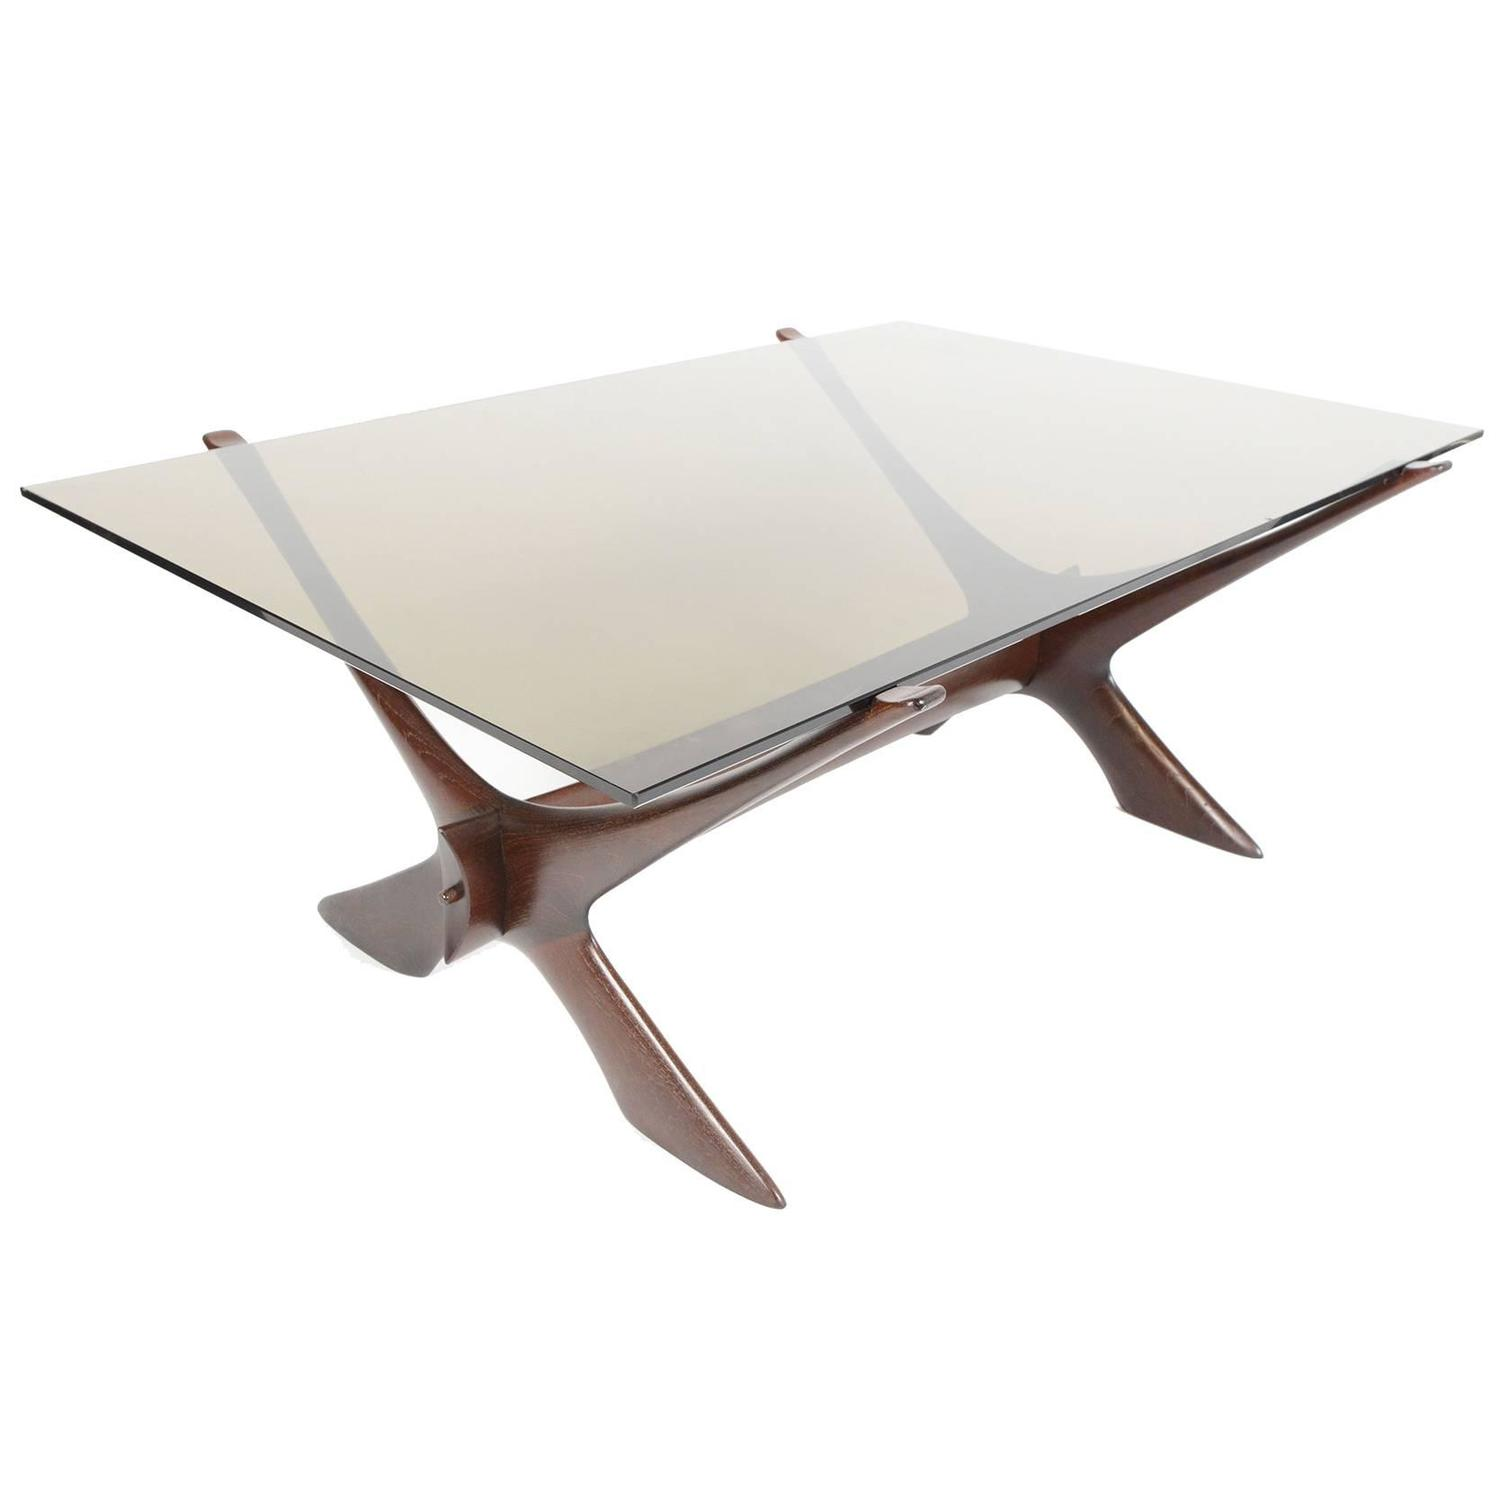 Stained Glass Coffee Table Book: Fredrik Schriever, Abeln Condor Coffee Table In Stained